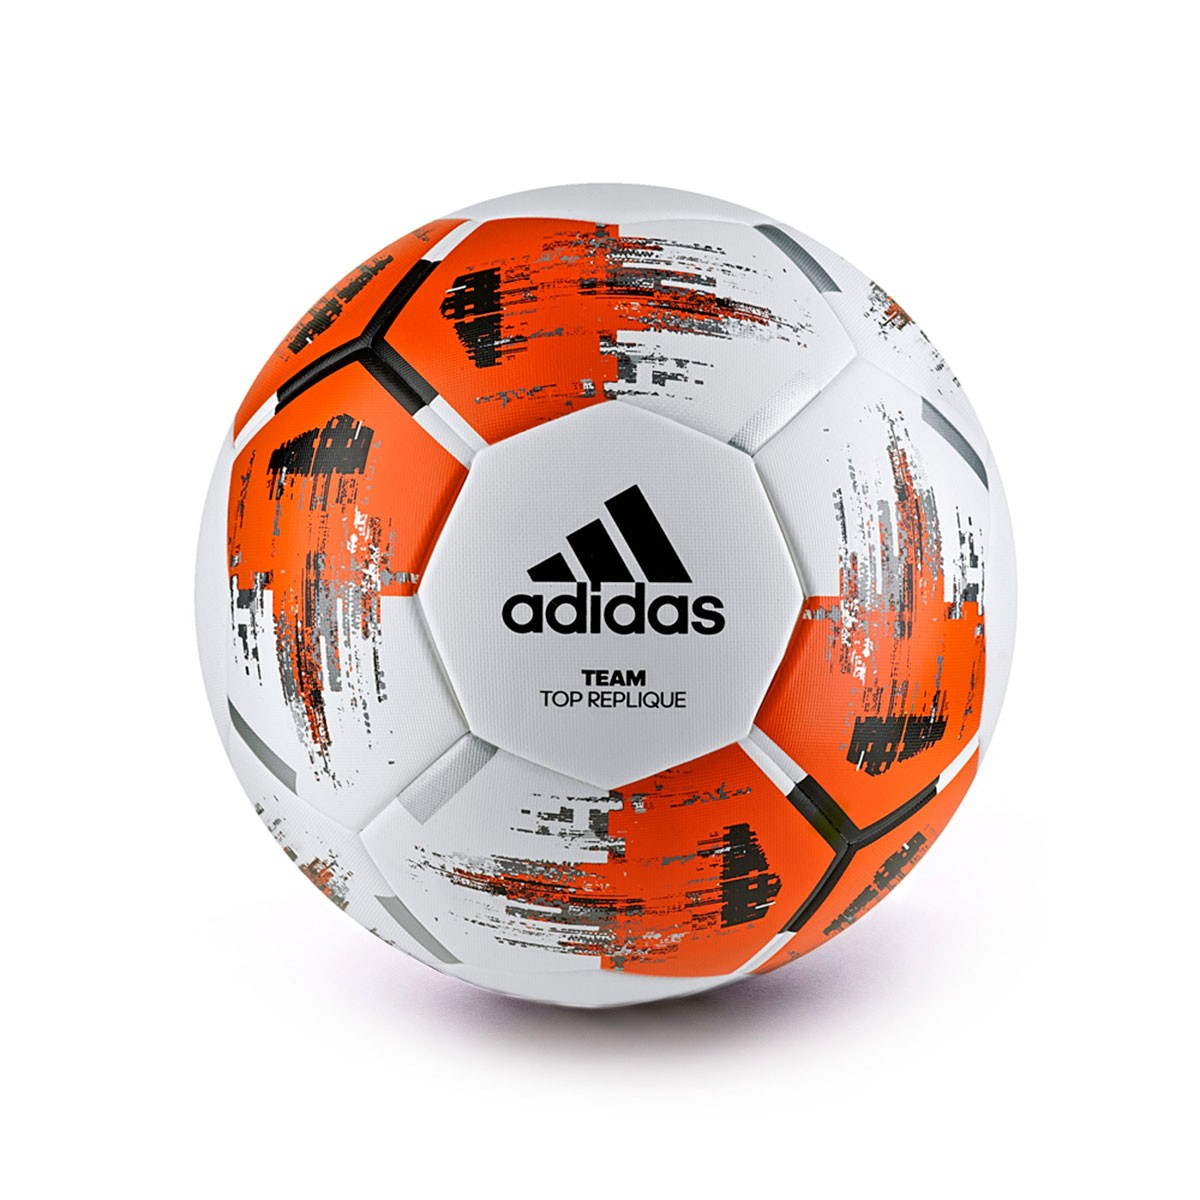 adidas TEAM Top Replique Ball